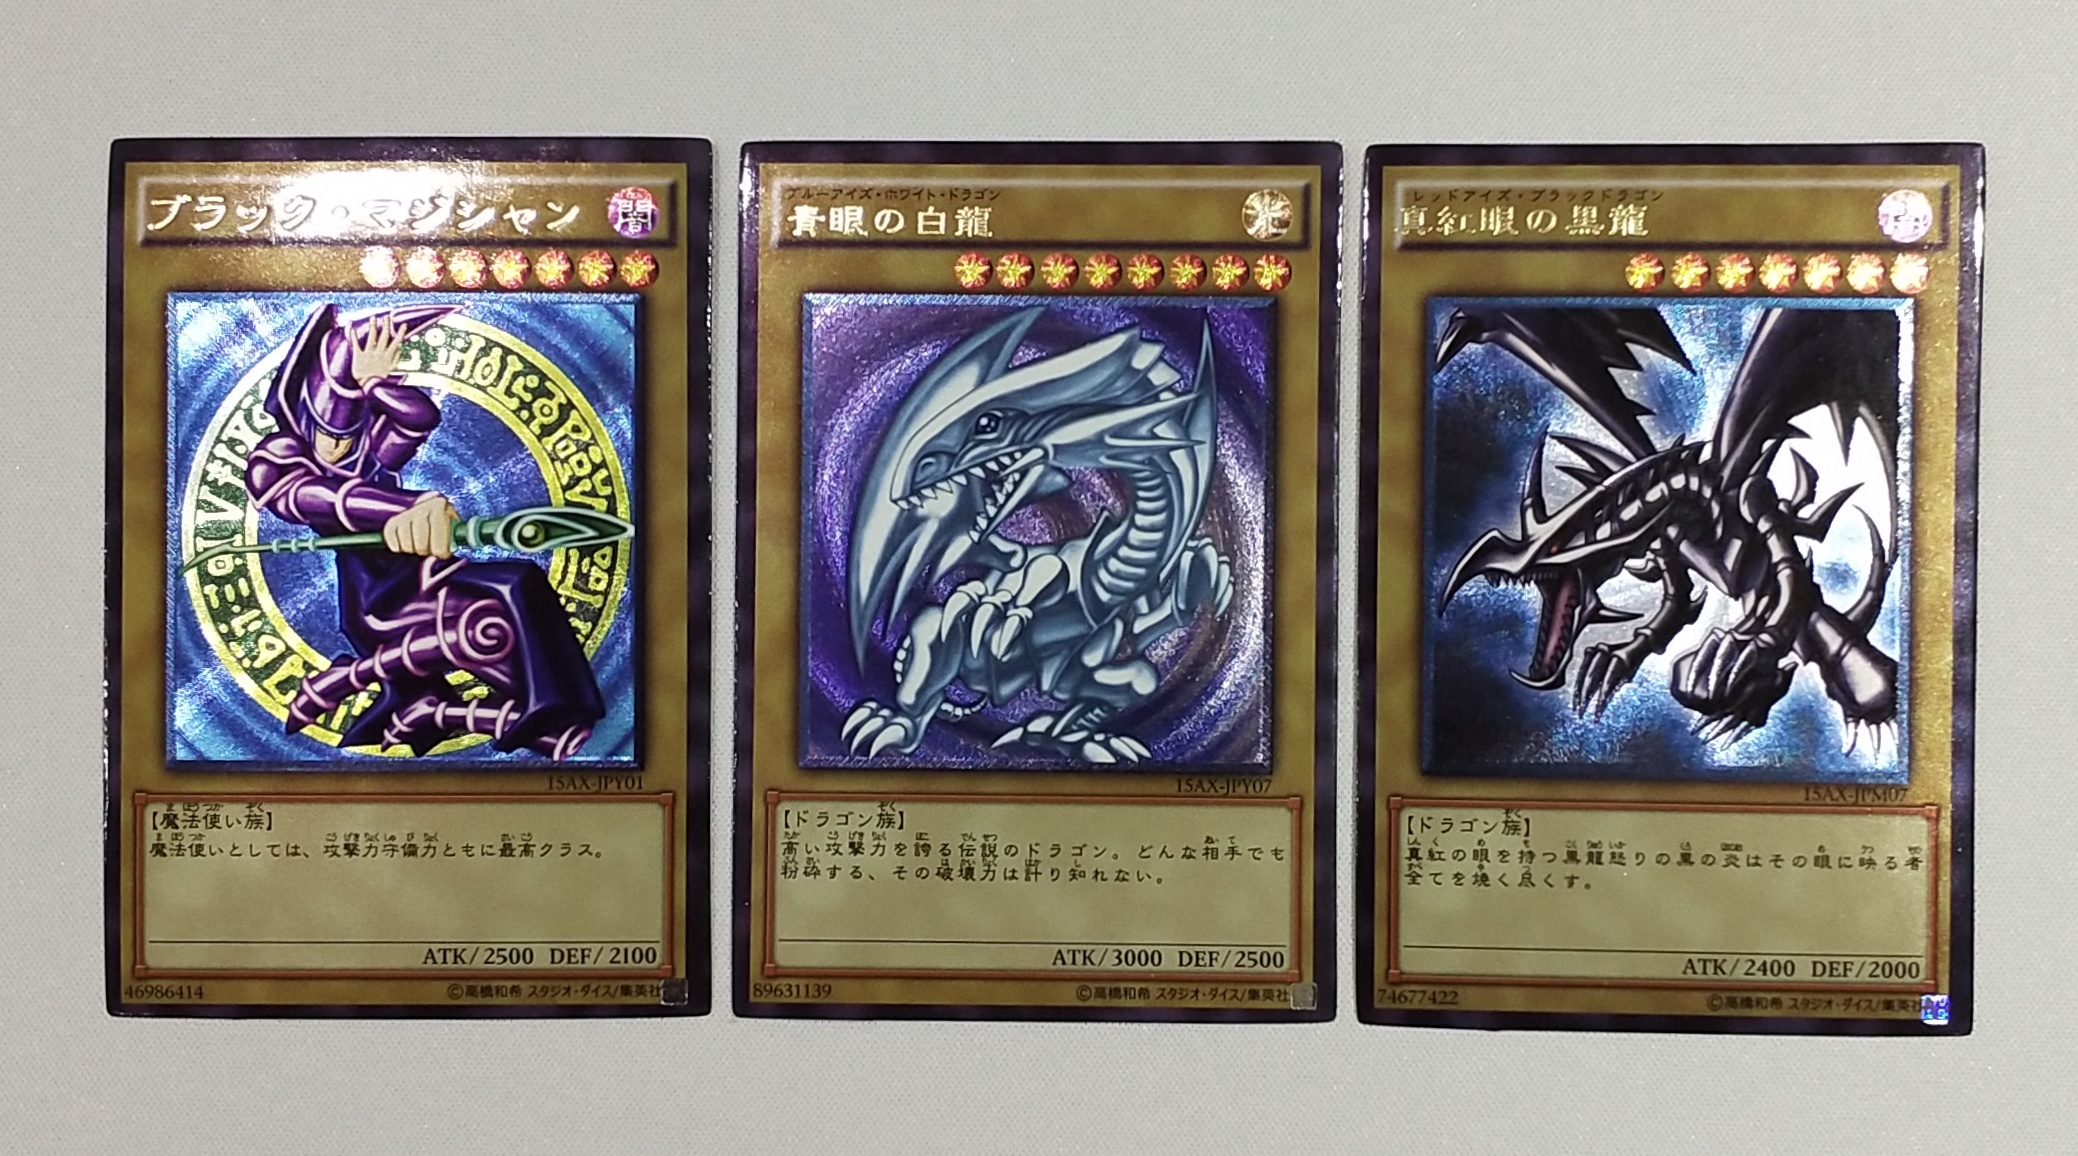 Yu Gi Oh Red Eyes B. Dragon Blue Eyes White Dragon Black Magician Toys Hobbies Hobby Collectibles Game Collection Anime Cards